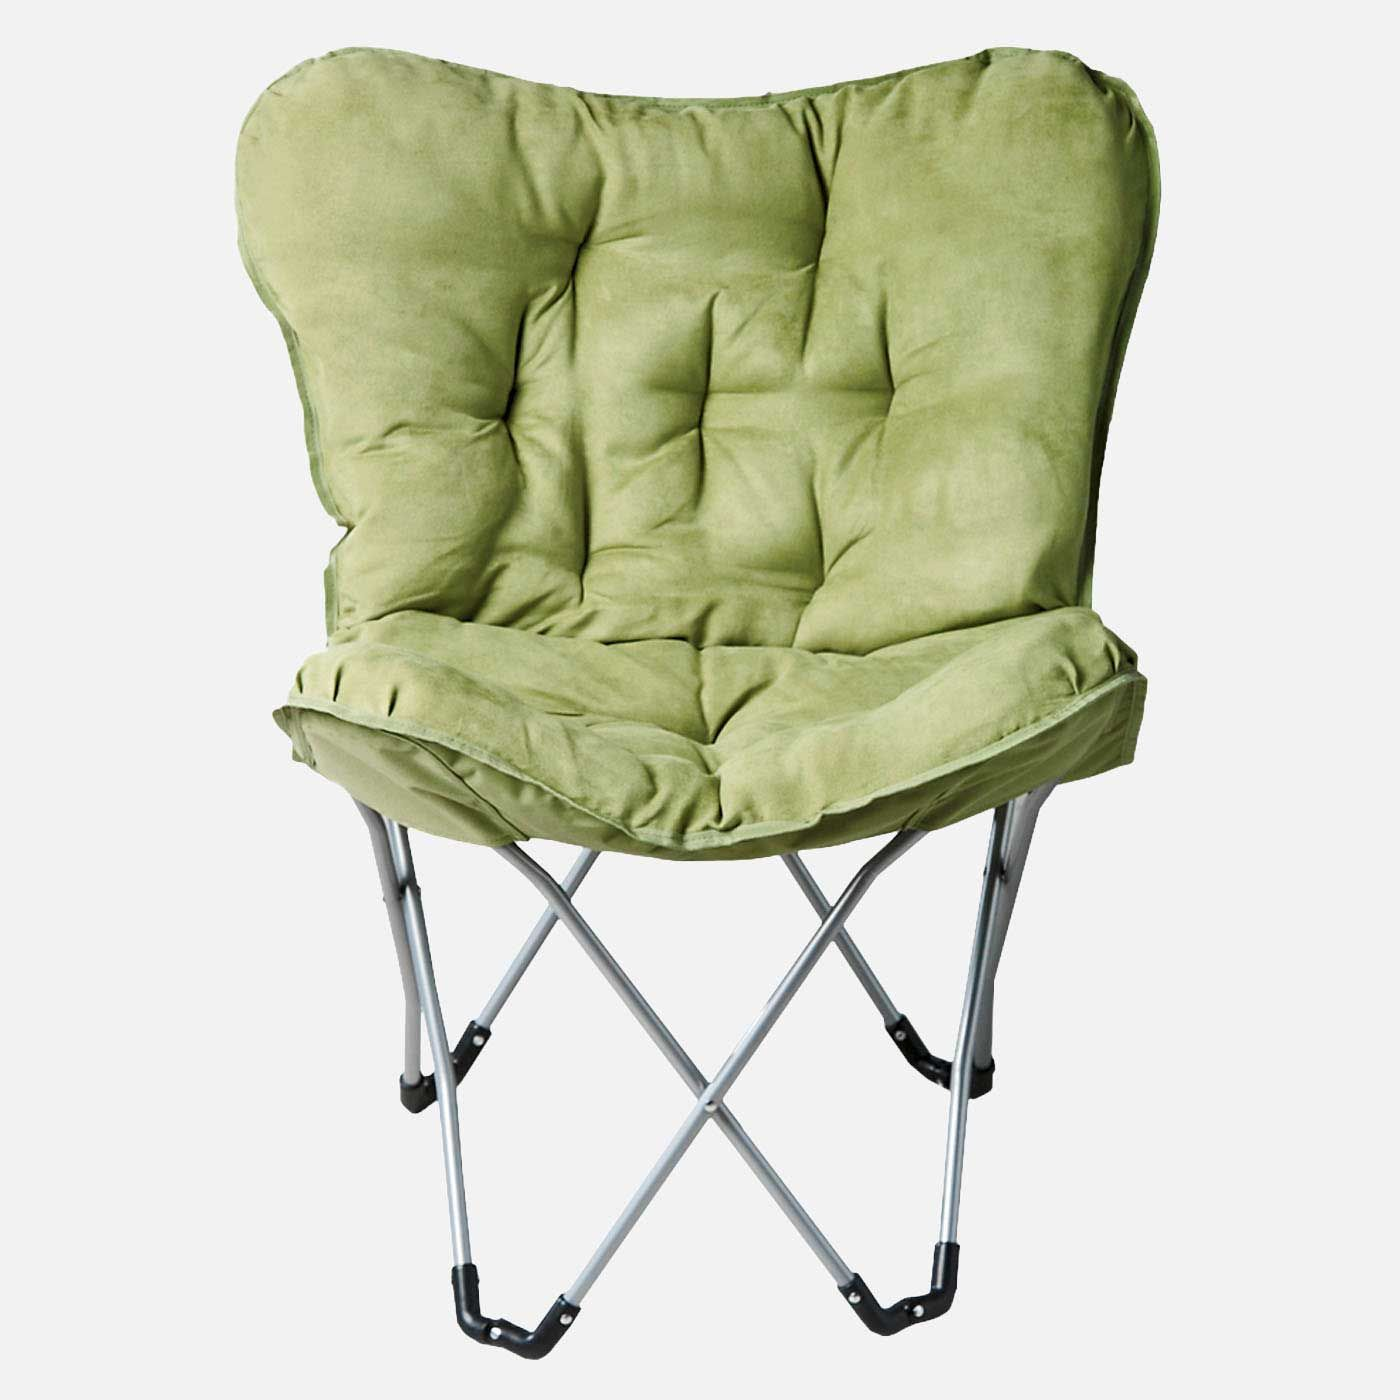 Attrayant Stylish Green Folding Chair With Cushion